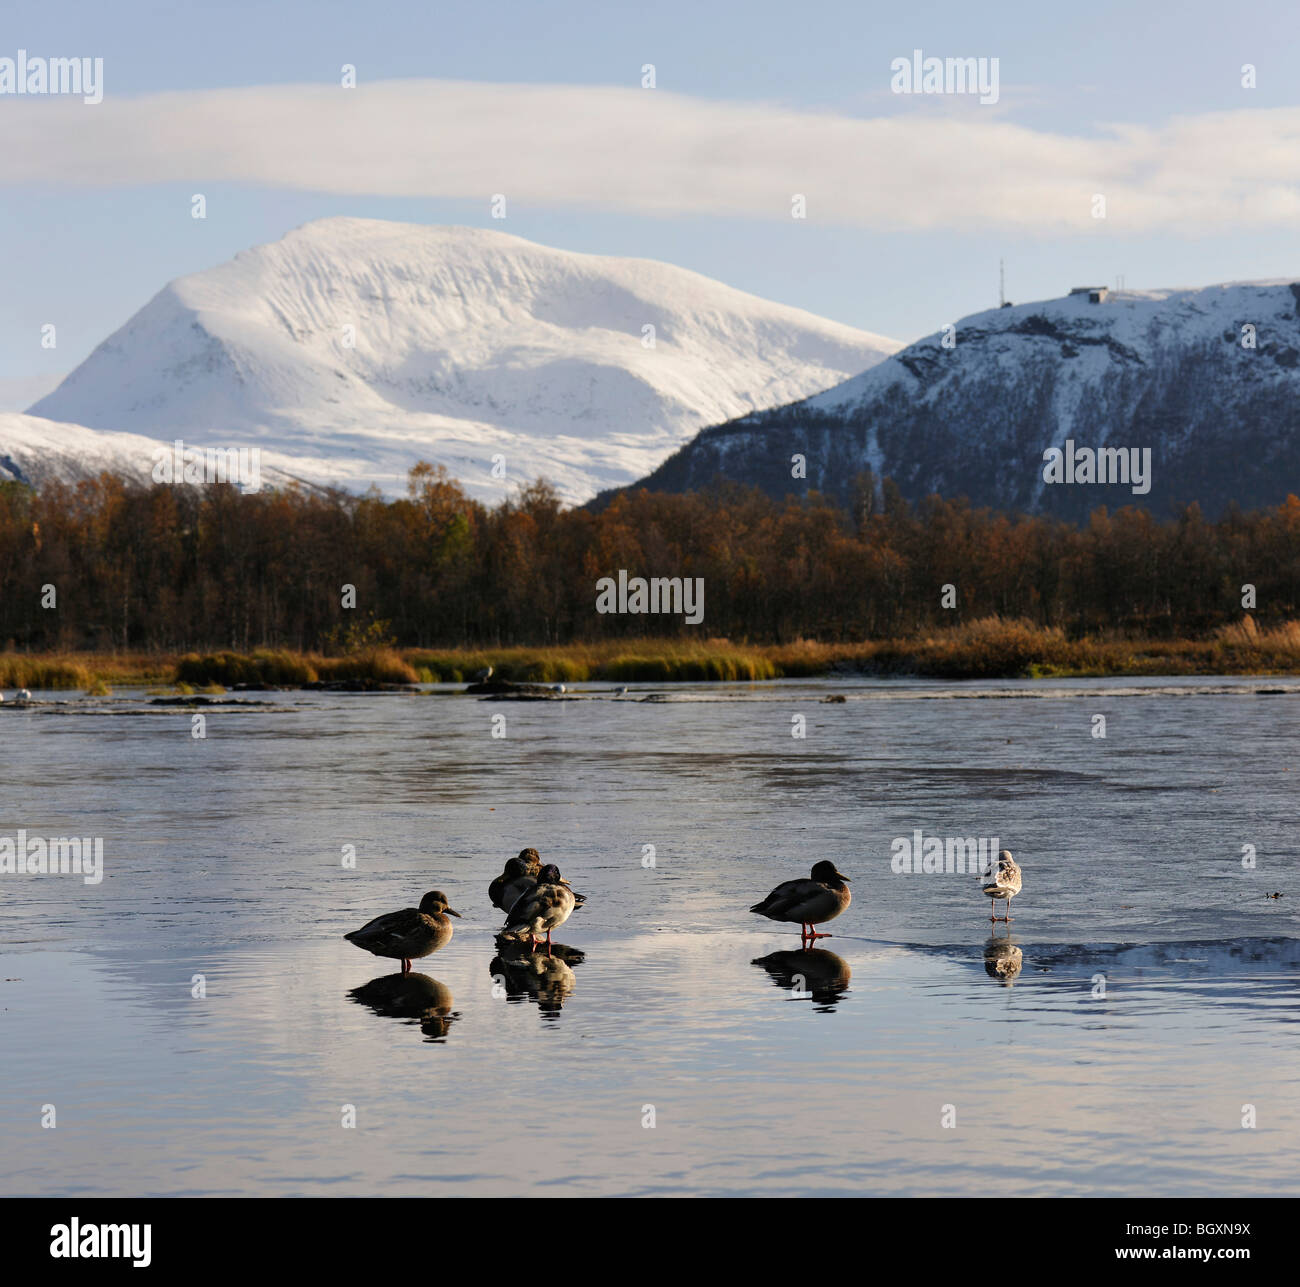 Mallard ducks and a seagullon a thin surface of ice on a lake. Reflections, mirror images, of the birds. Tromso, North Norway. Stock Photo